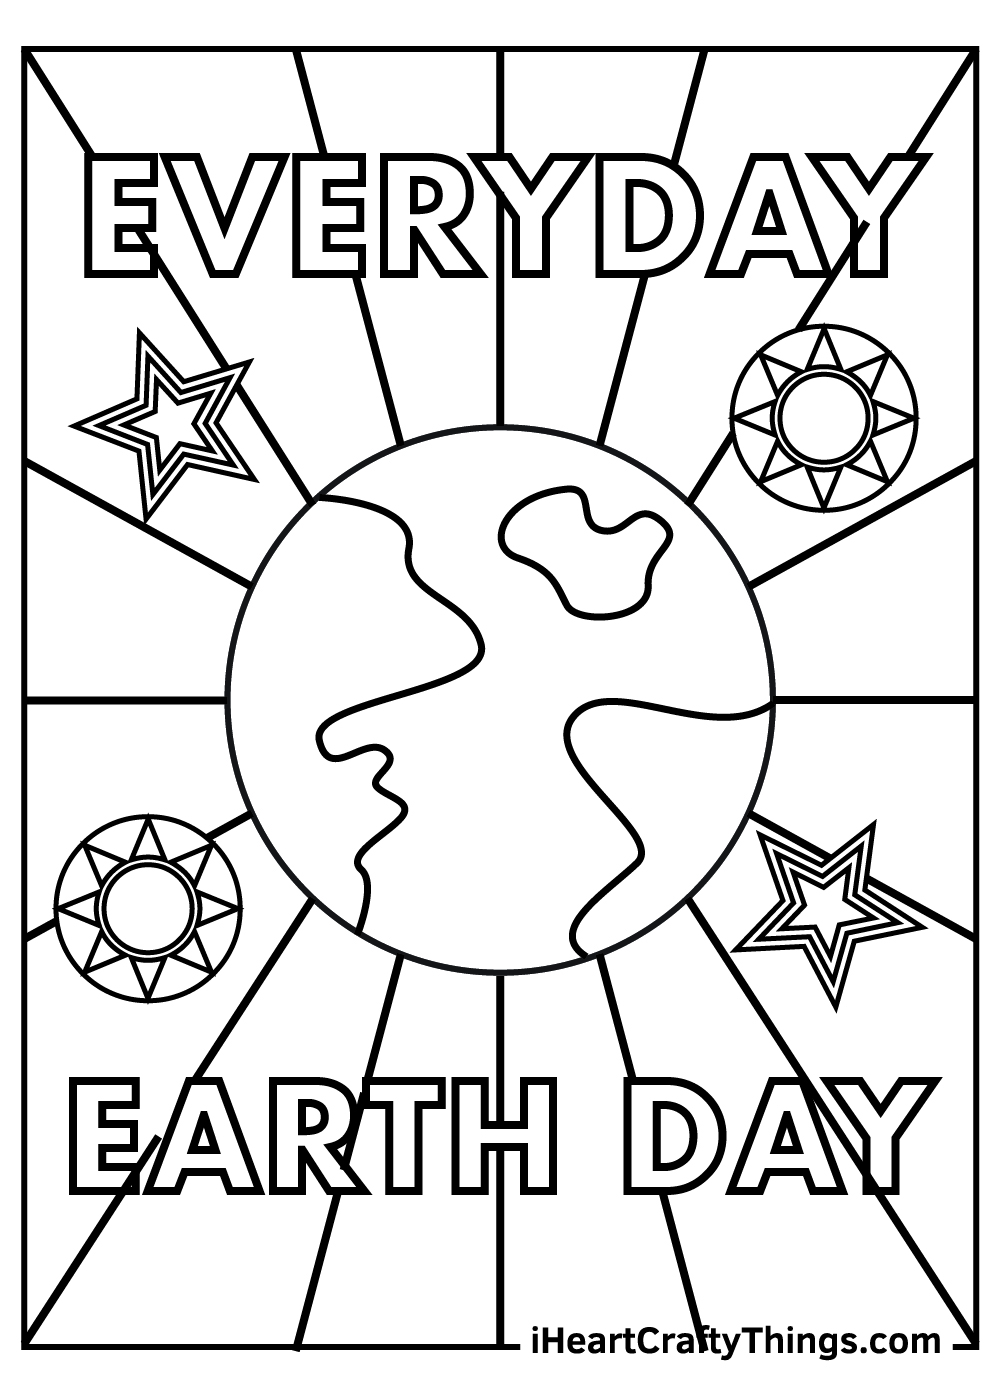 everyday earth day coloring pages free pdf